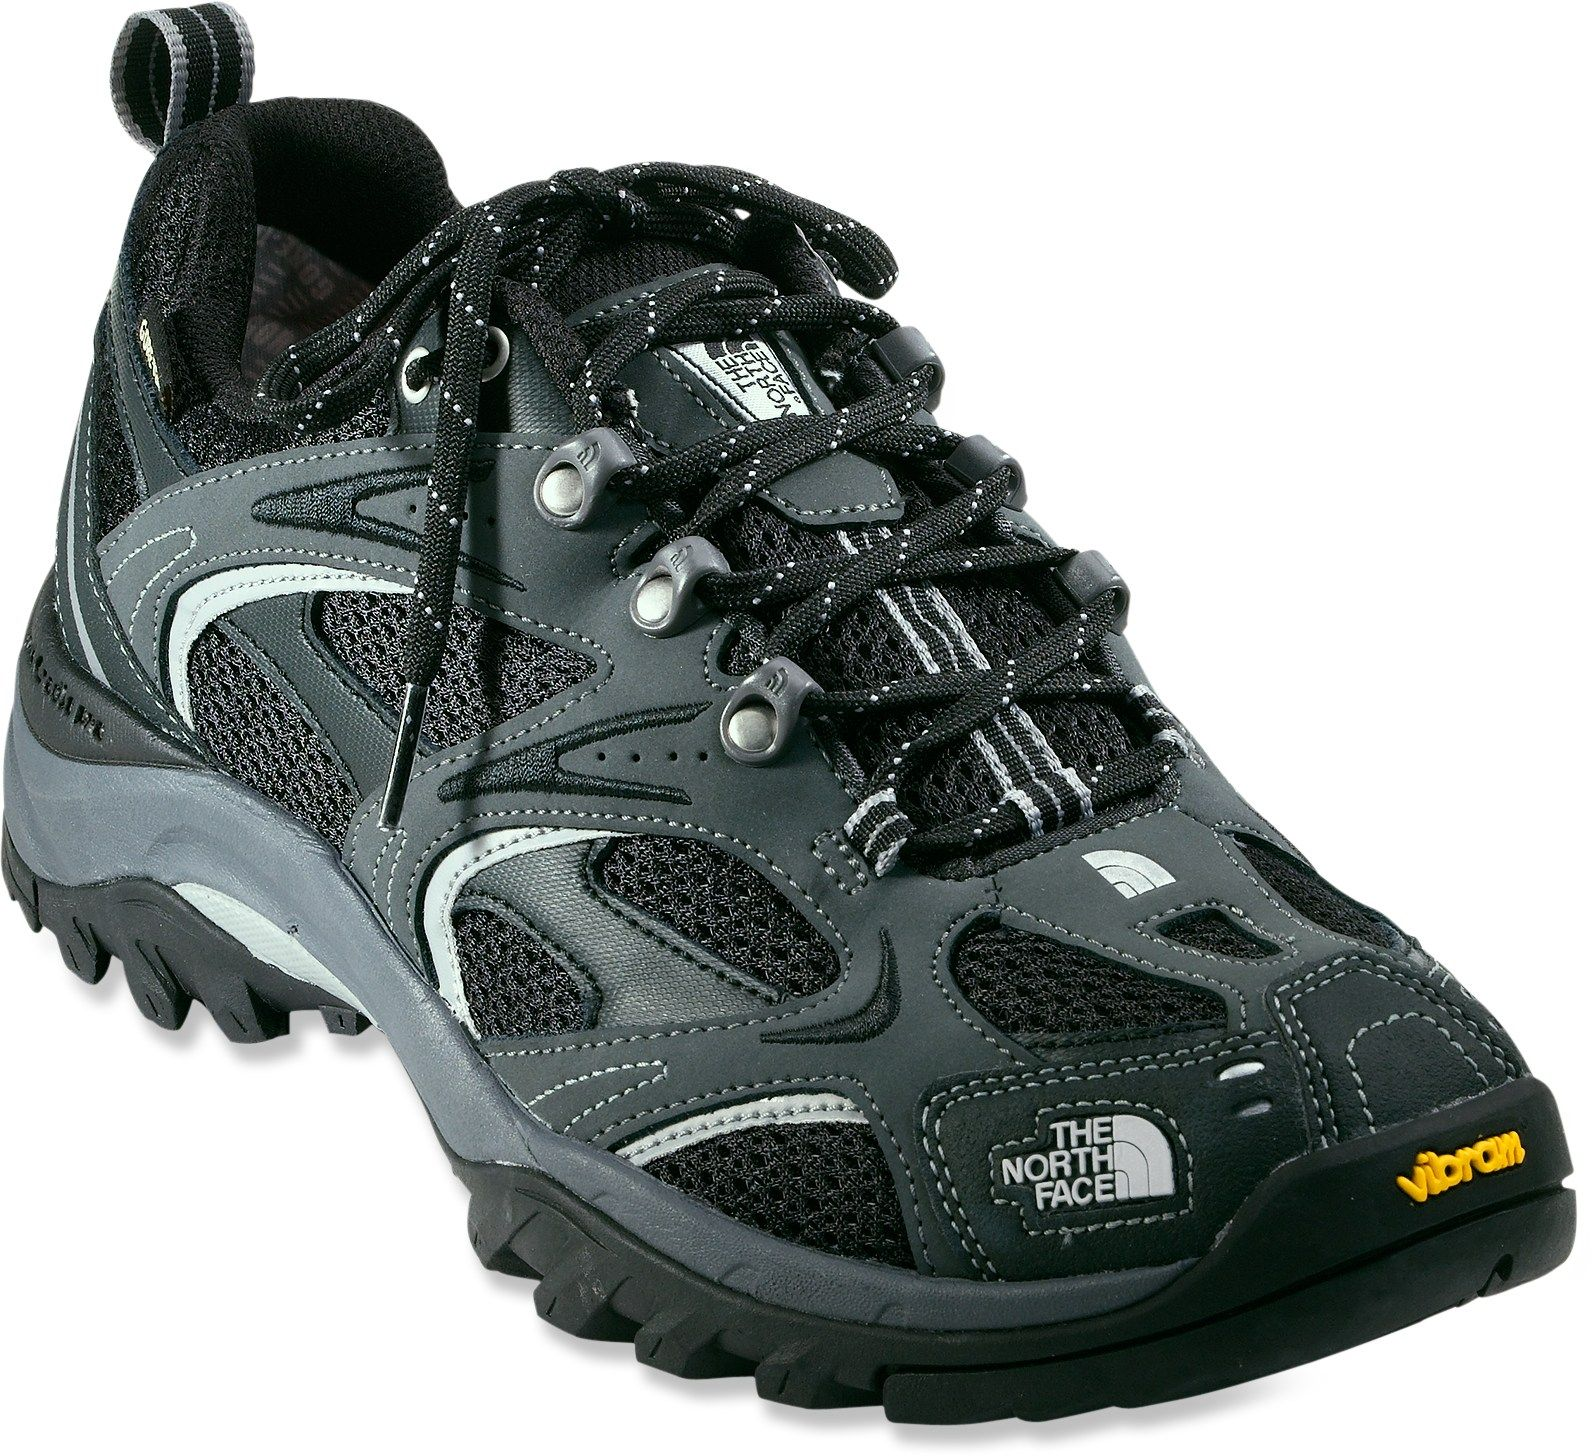 5720e3faaf107 Hedgehog III GTX XCR Hiking Shoes - Men's | Casual | Shoes, Hiking ...